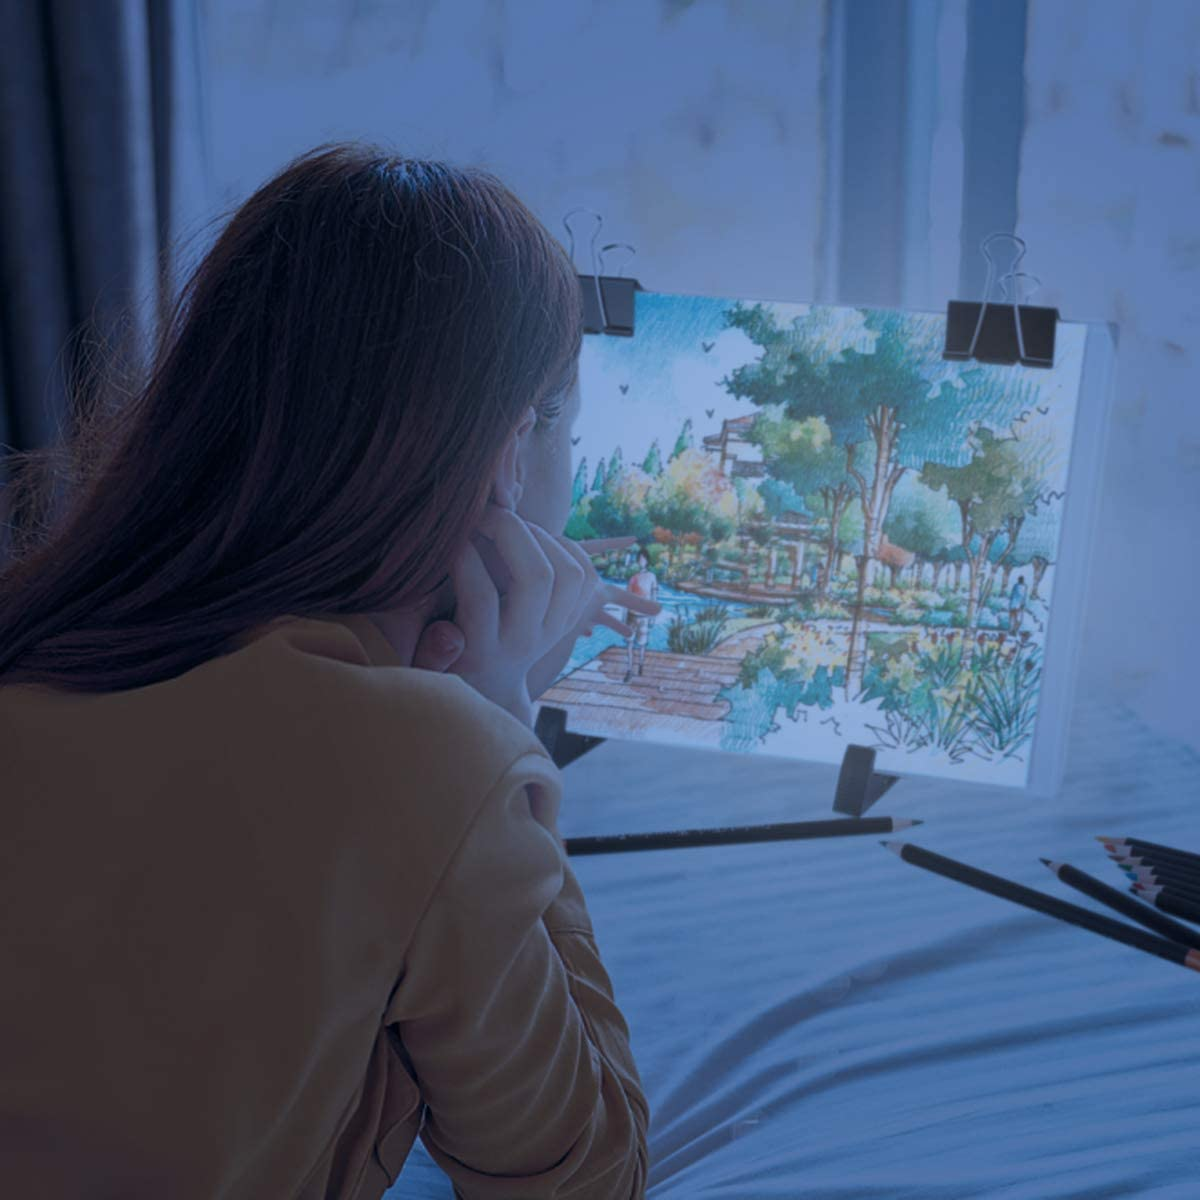 Portable LED Tracing Light Board DIY Dimmable Light Brightness Table,Reusable A4 Painting Pads Best for Artists Drawing,Sketching and Animation Stencilling,Tracing. A4 Led Light Painting Kits